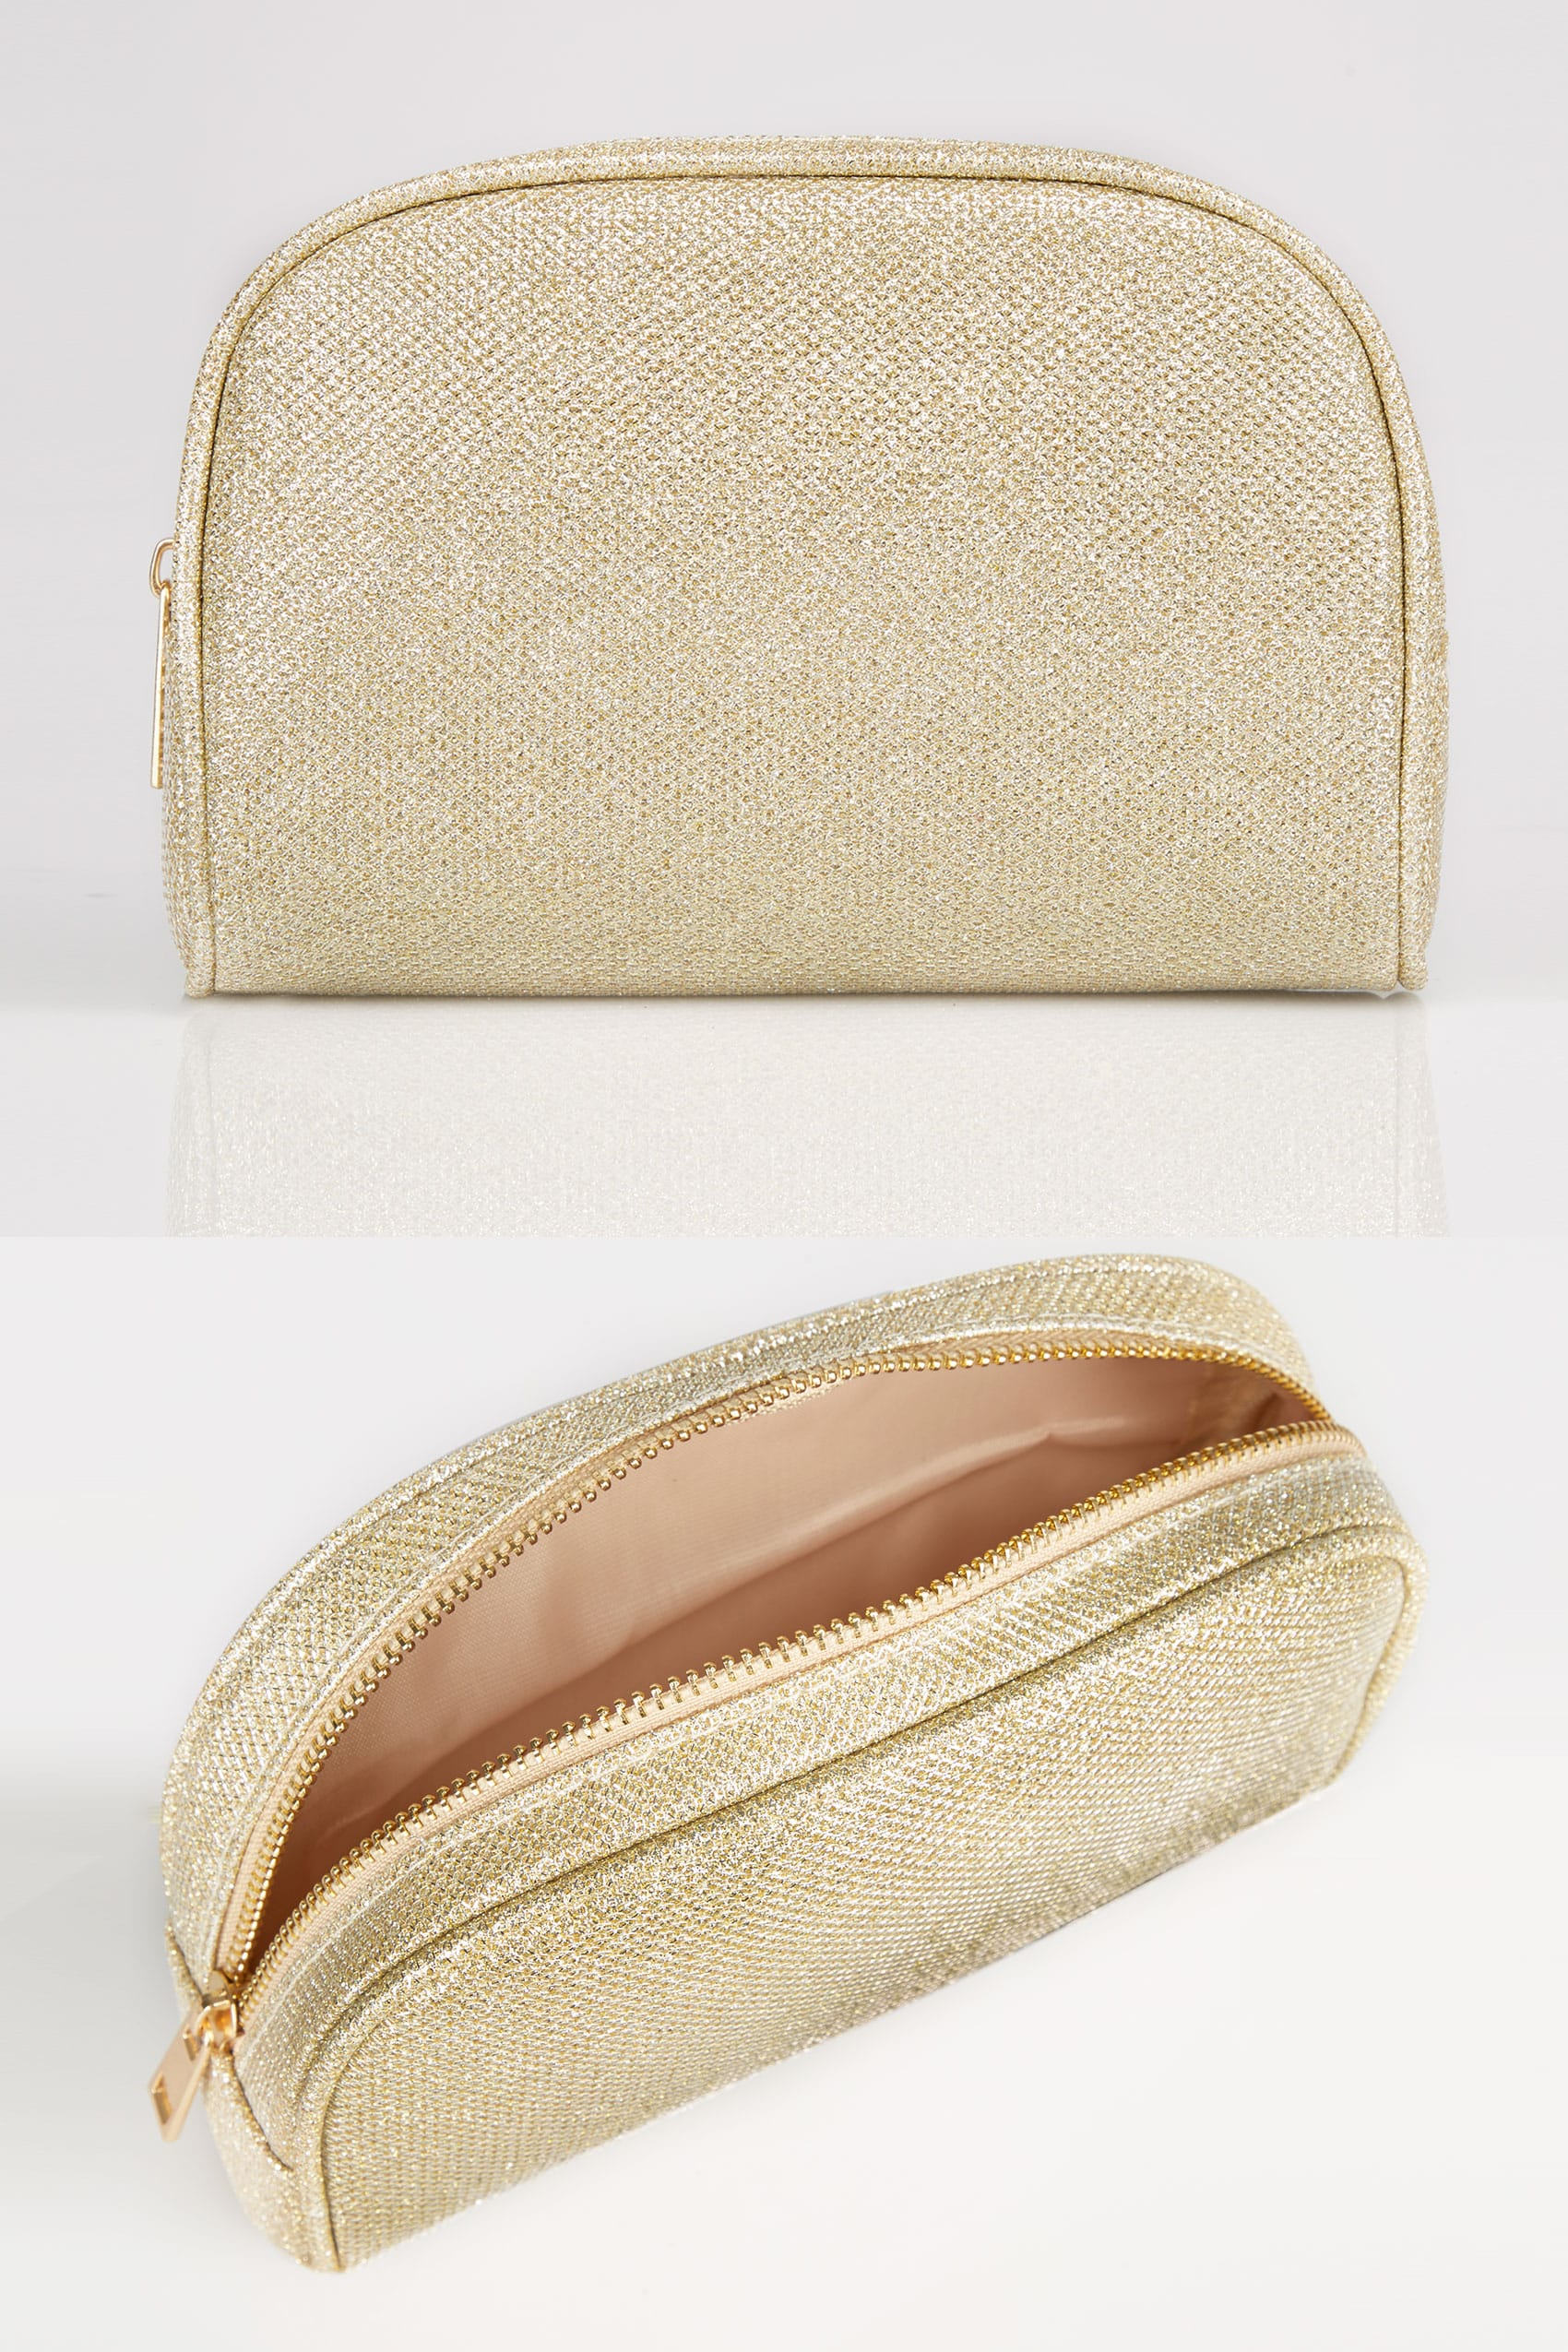 gold oval glitter make up bag with zip top. Black Bedroom Furniture Sets. Home Design Ideas